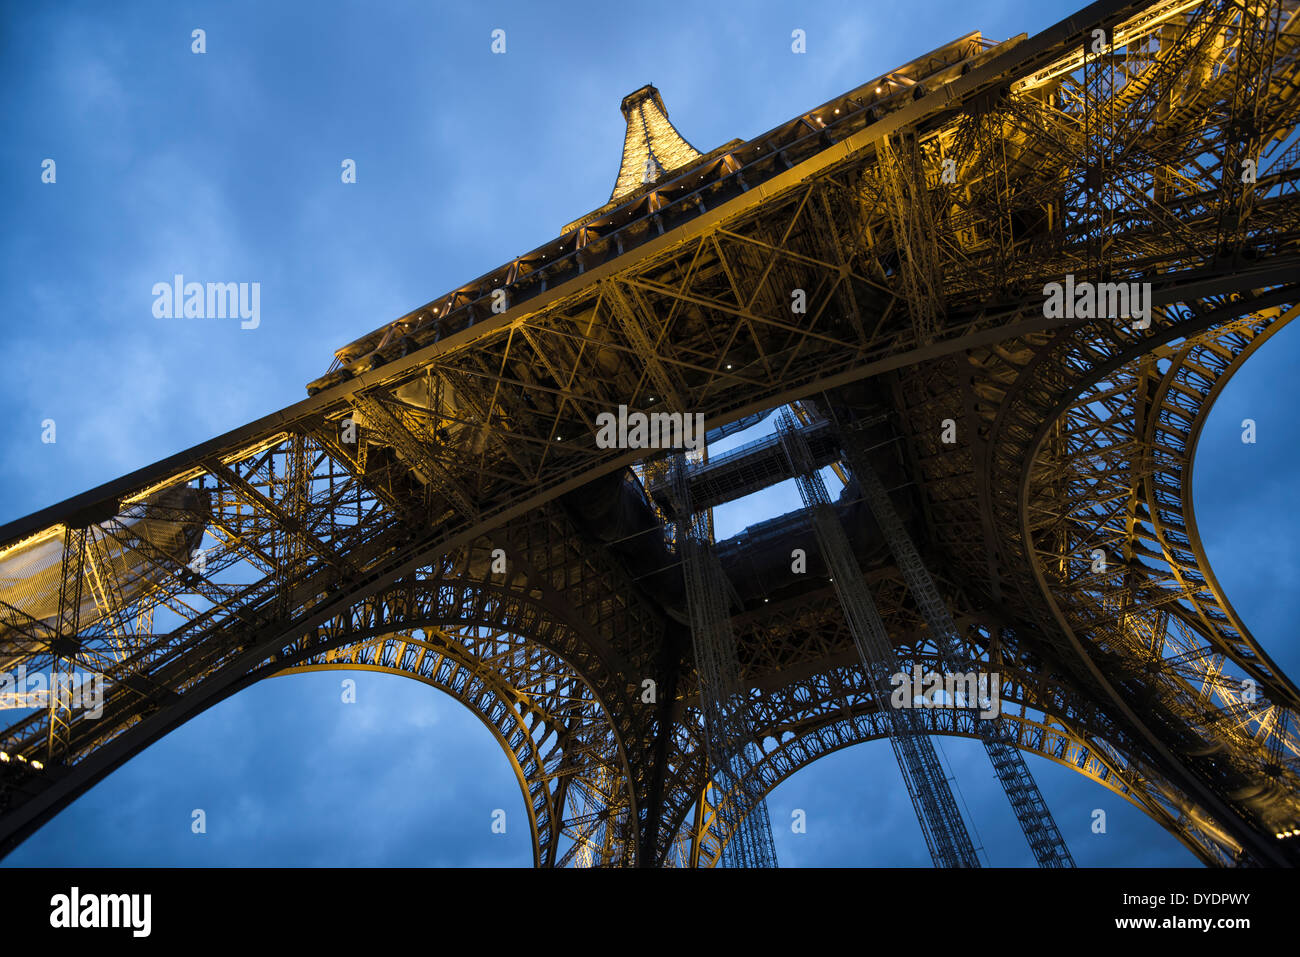 Under the Eiffel Tower, Paris - Stock Image